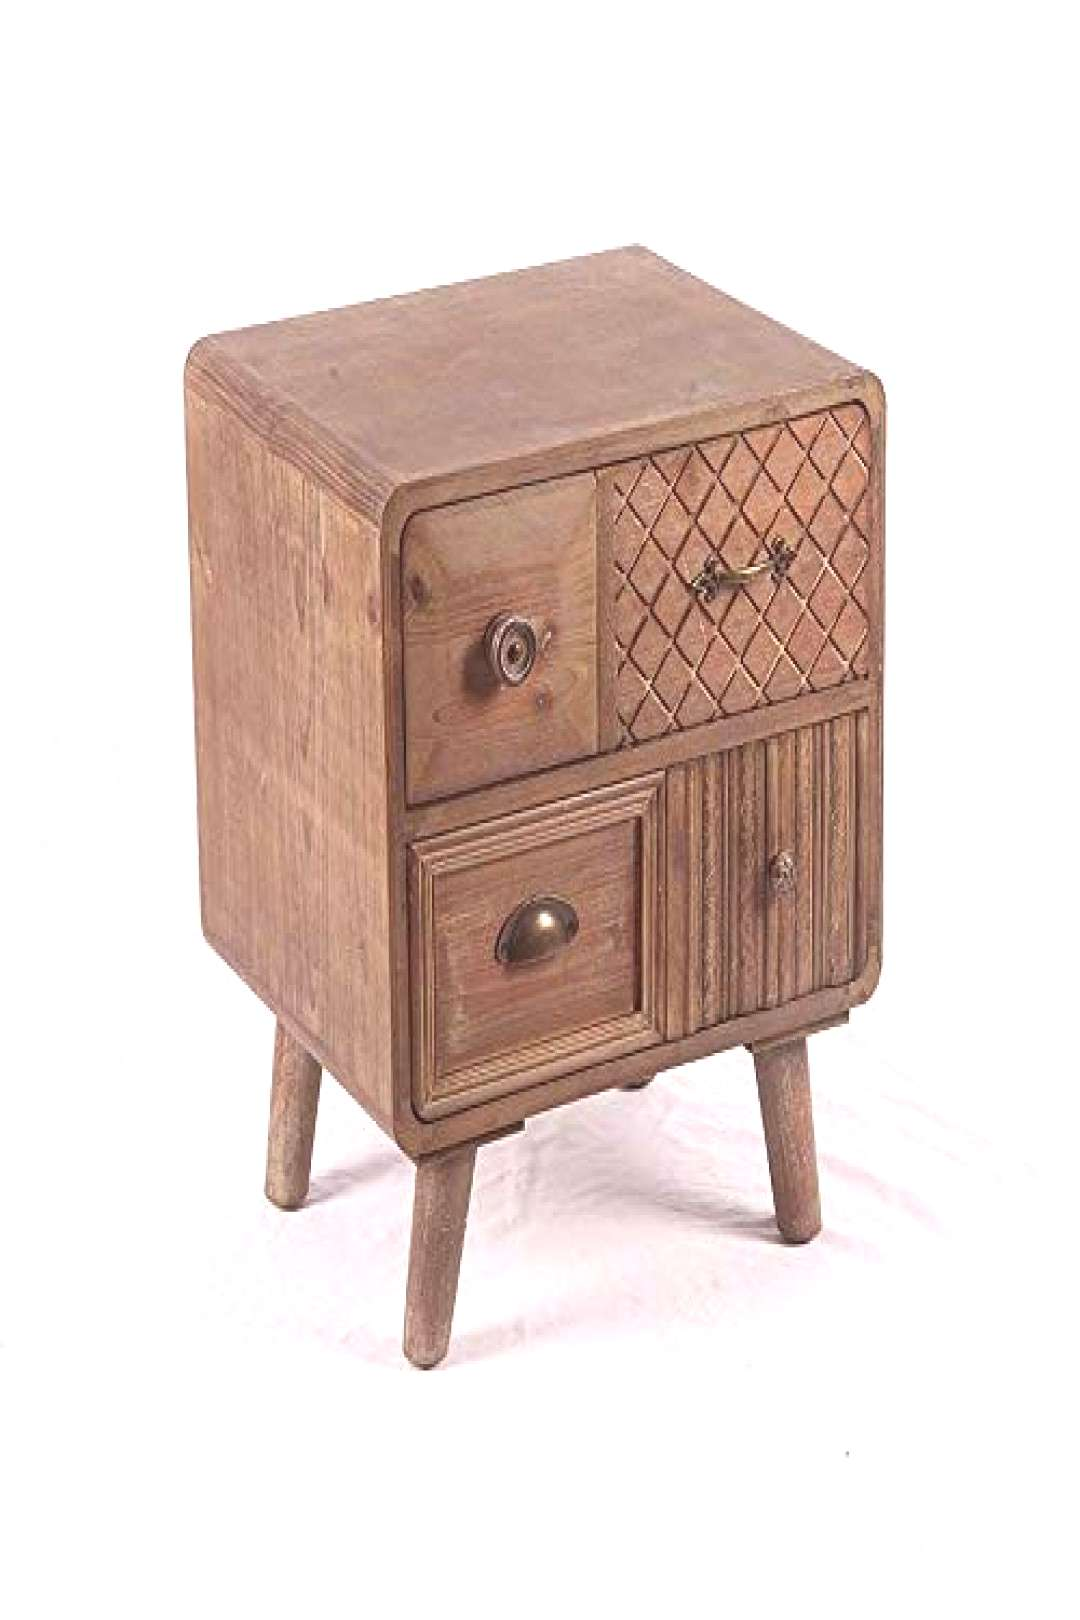 Amazing offer on ZJ?Dong Bedside Table Bedside Table, Retro Personality Creative Homestay Decorativ